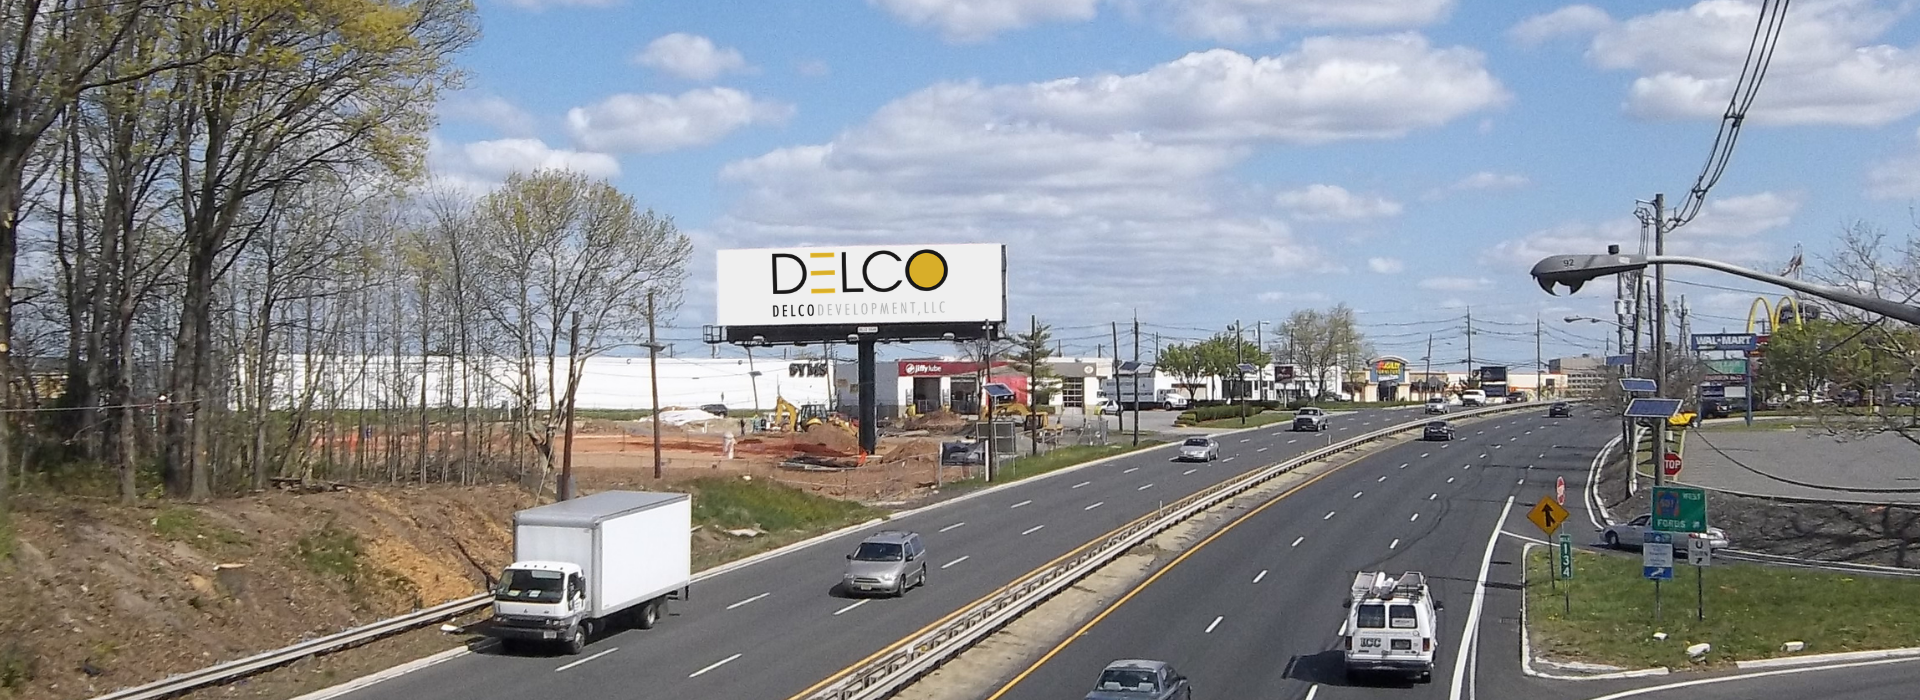 Billboard with clouds